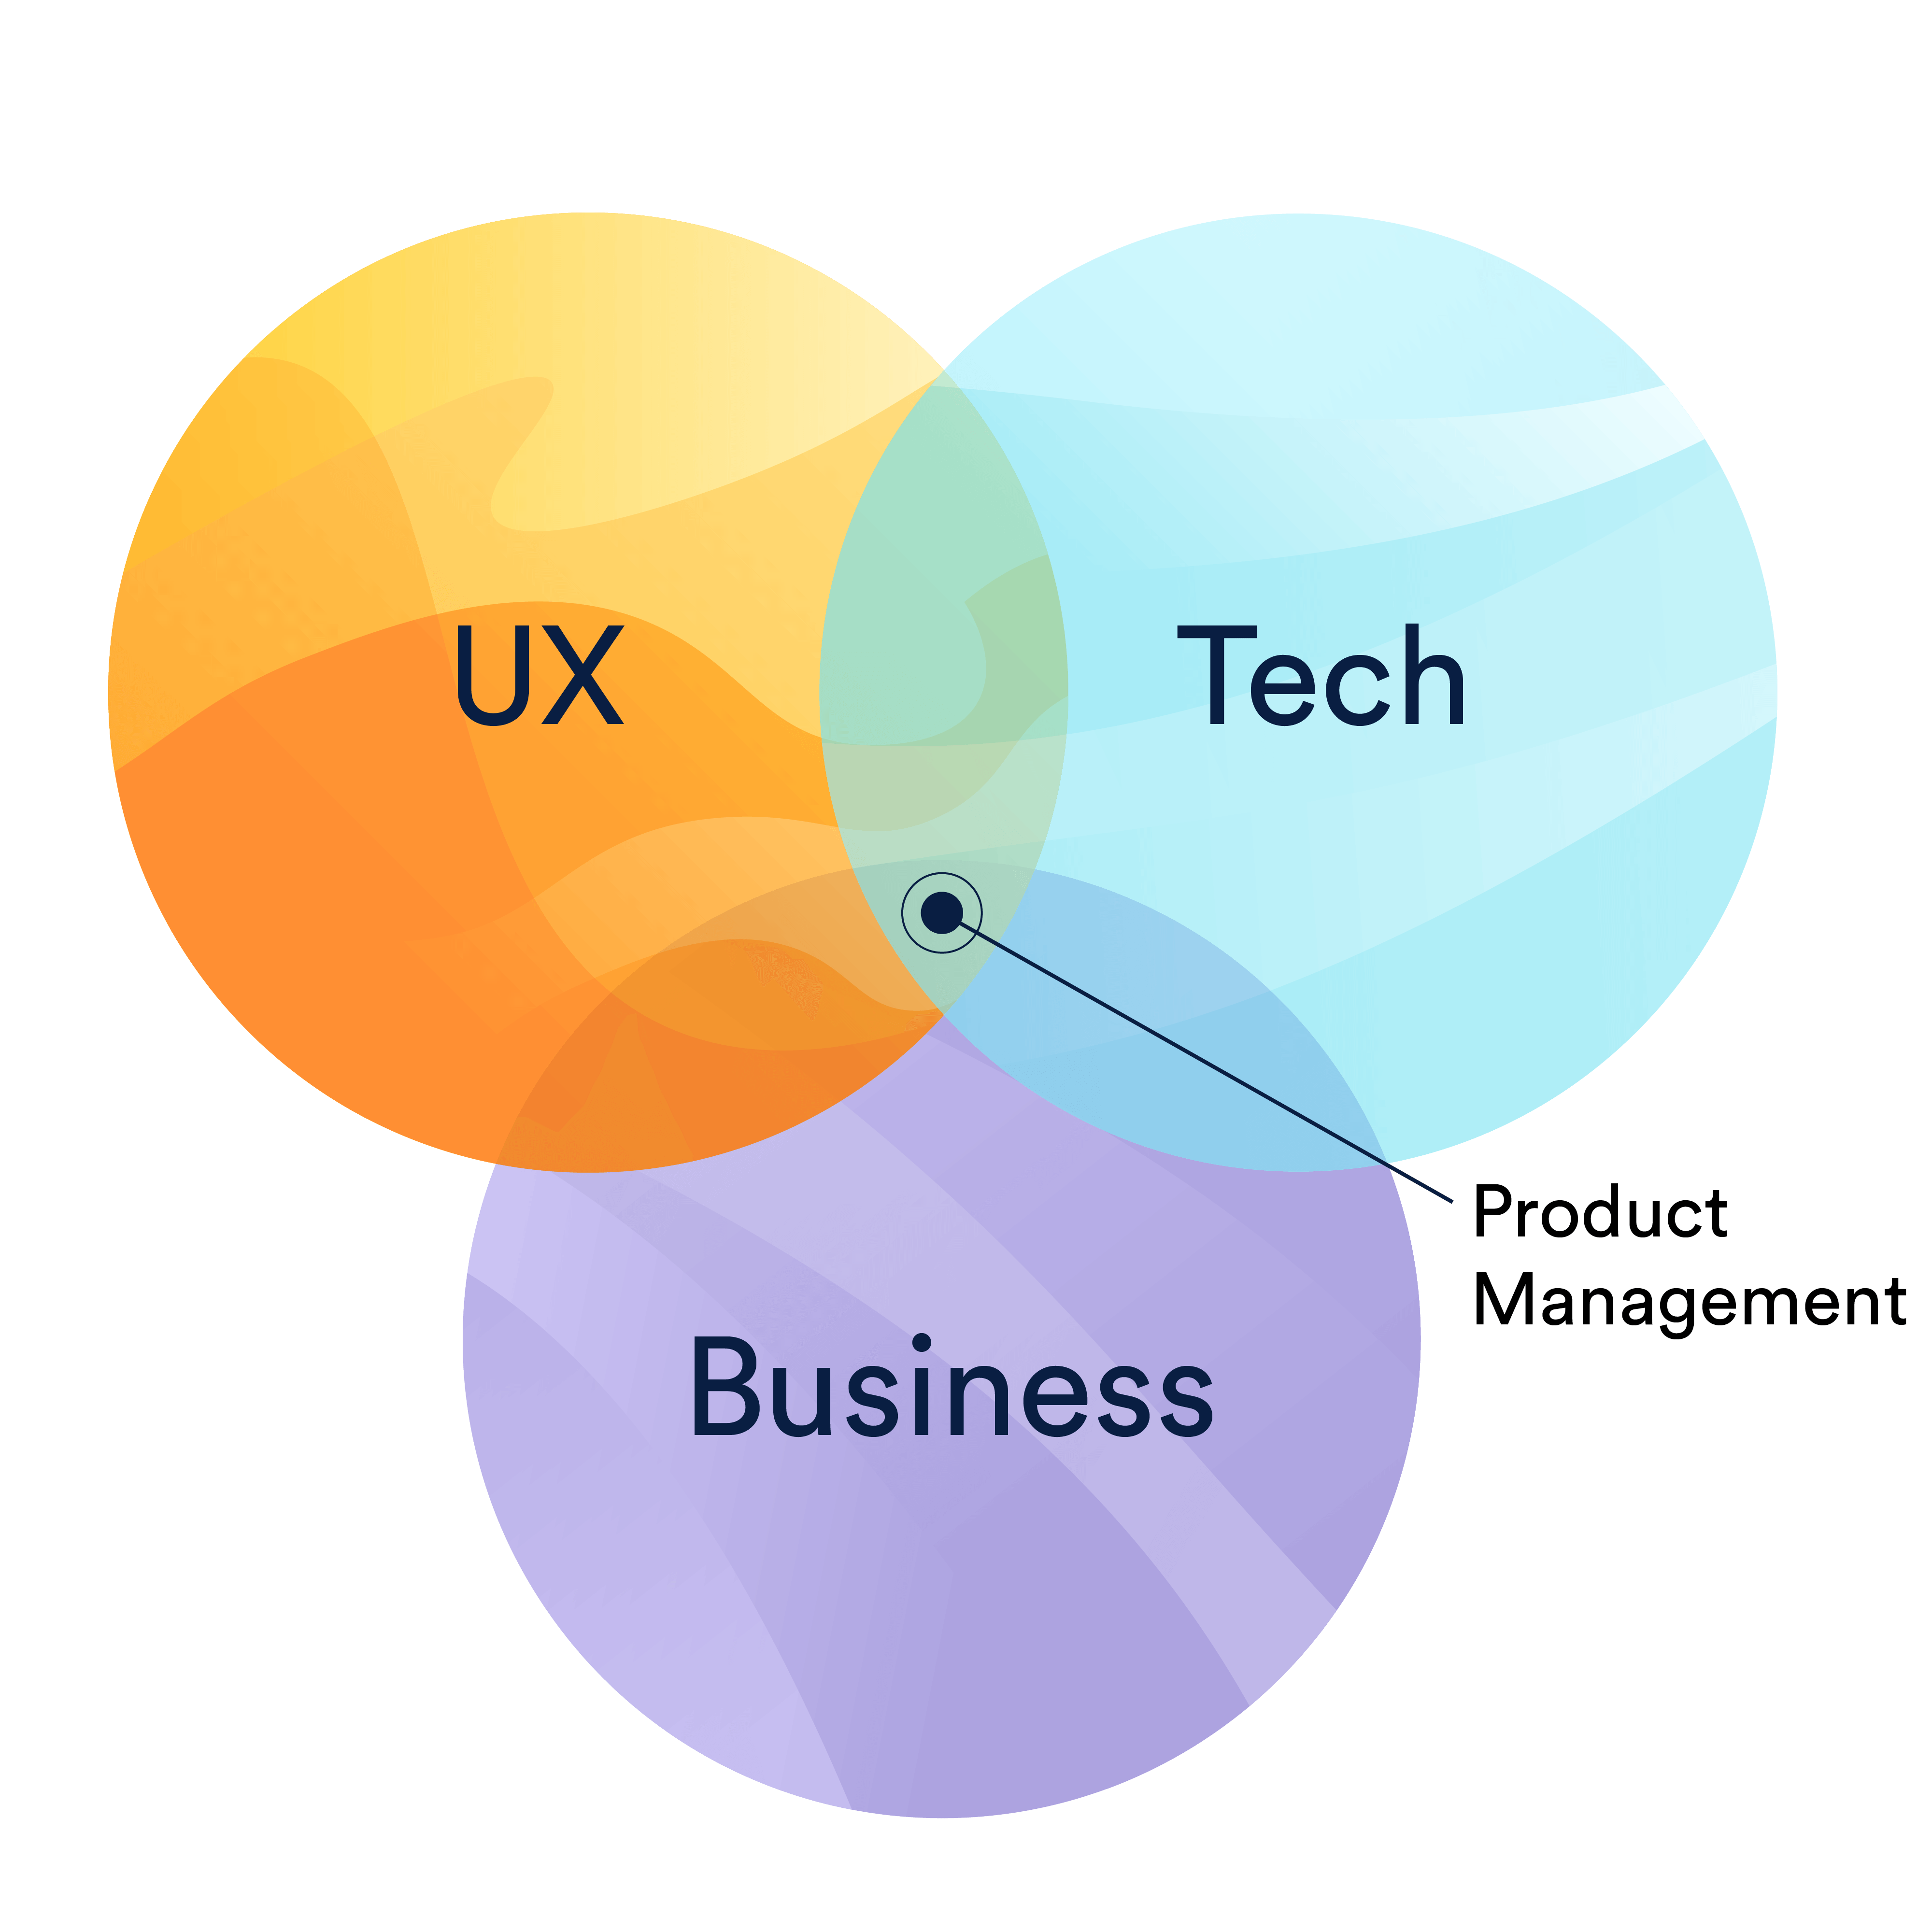 Martin Eriksson has famously described product management as the intersection of business, user experience, and technology.